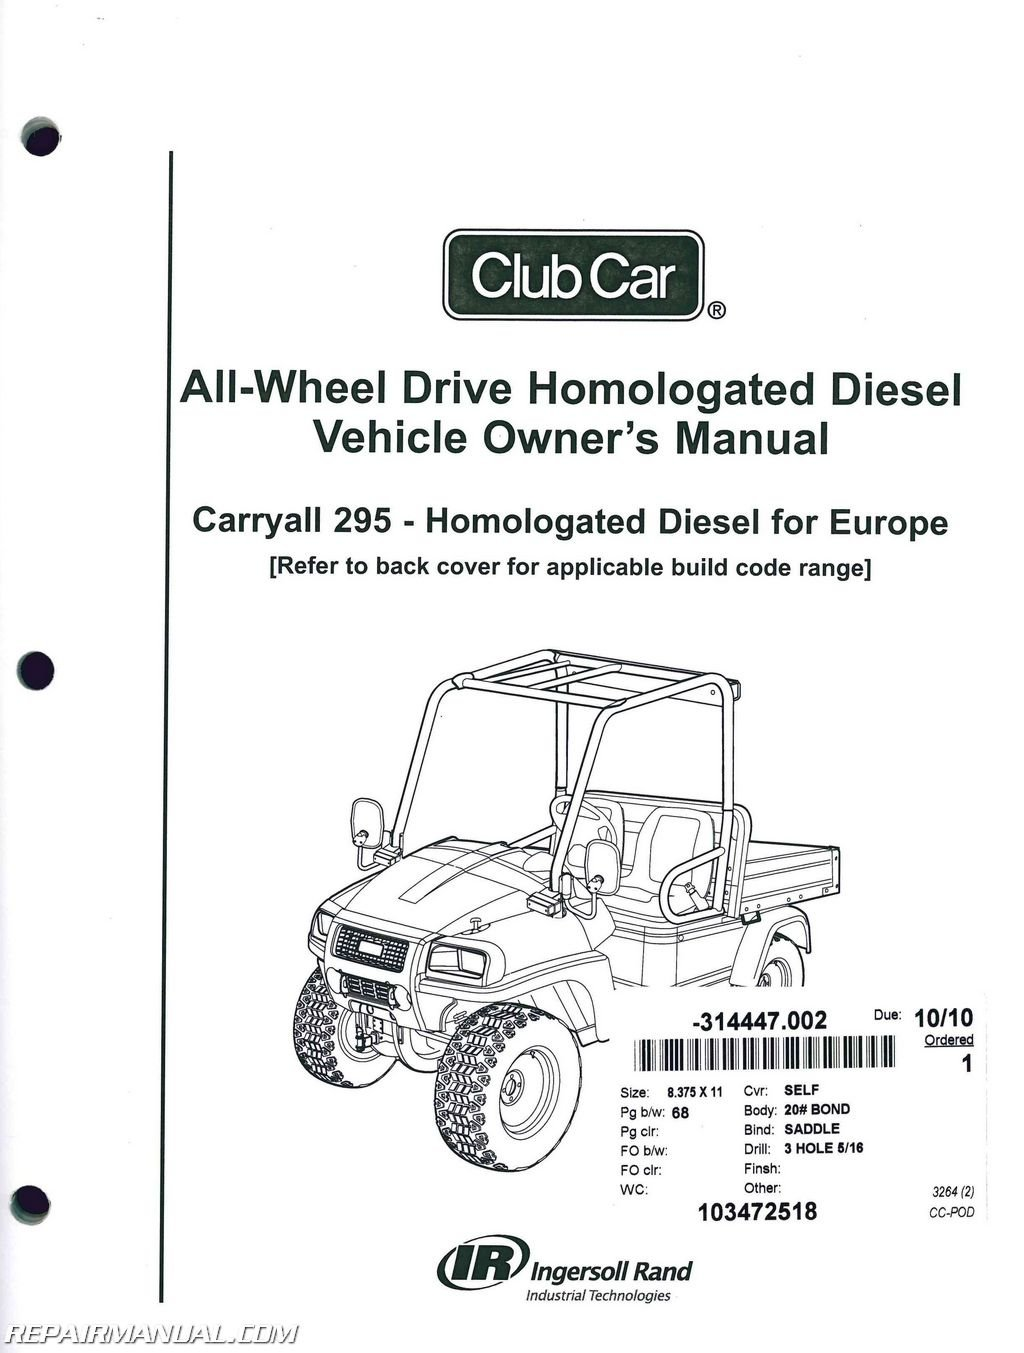 103472518 Club Car Carryall 295 Homologated Diesel Vehicle Owners Manual:  Manufacturer: Amazon.com: Books